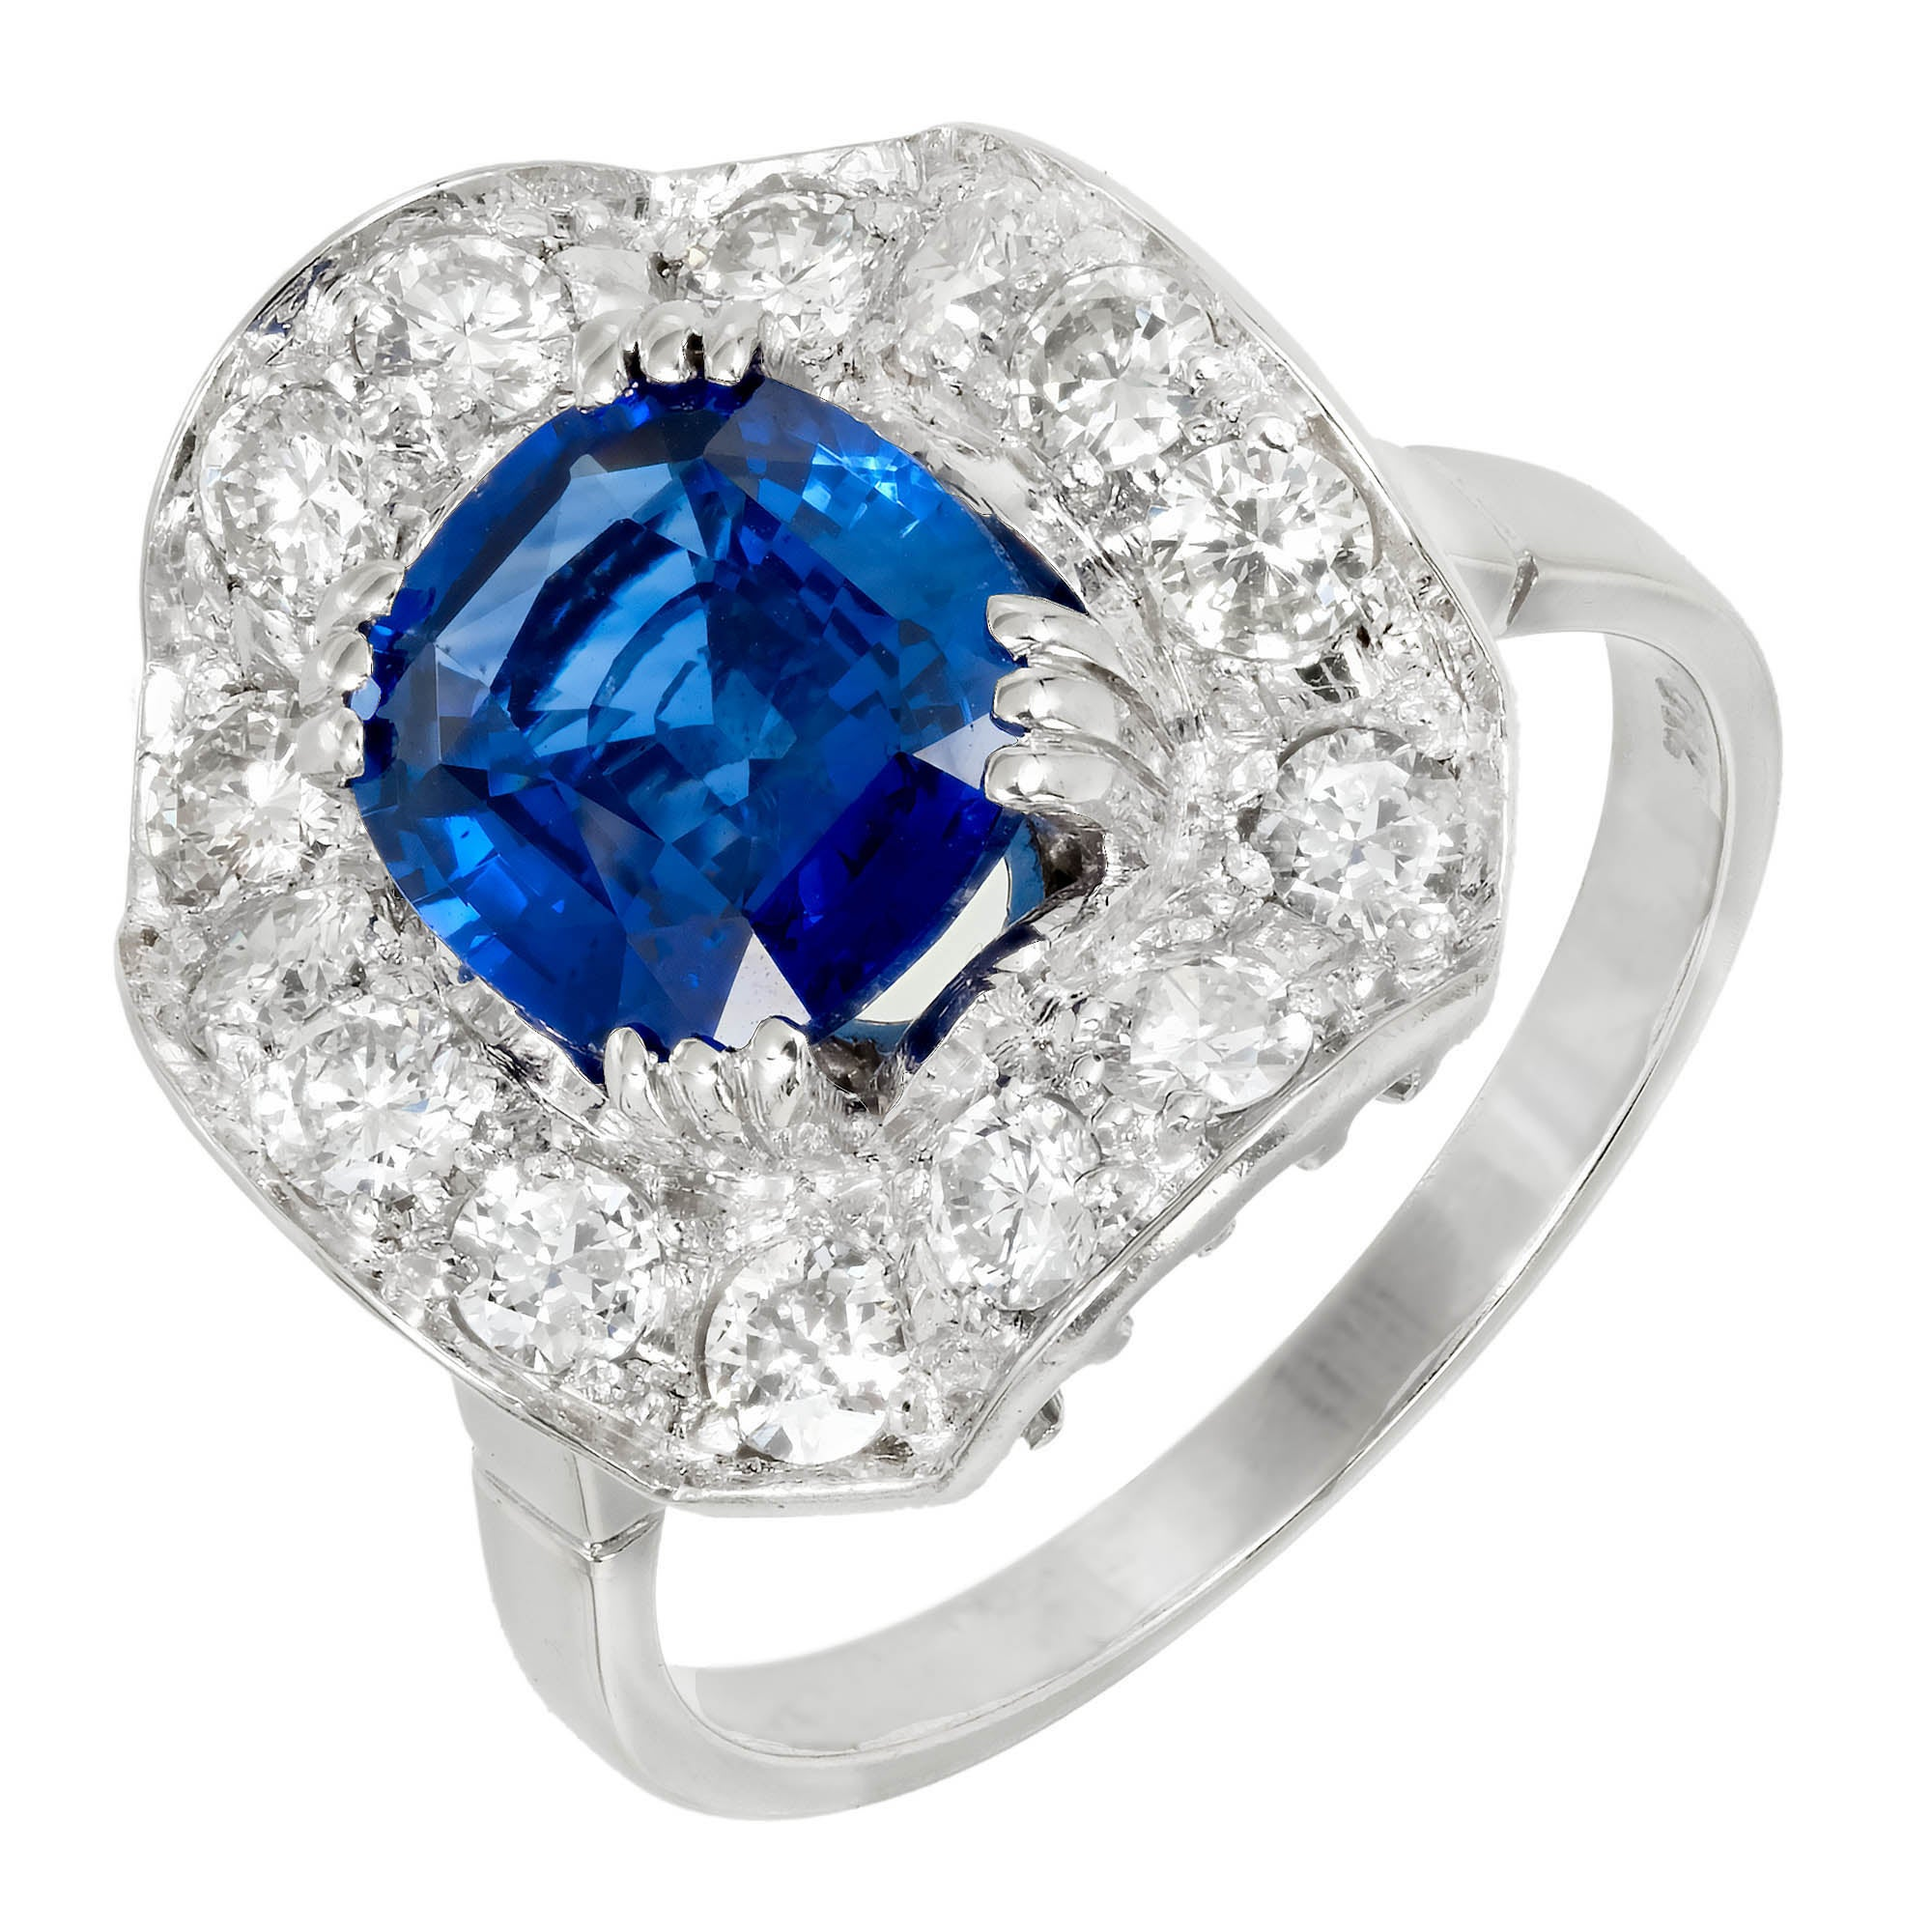 blue maniamania solitaire devotionsolitairering gold bluesapphire dark products darker midnight sapphire devotion ring rings whitegold white side engagement